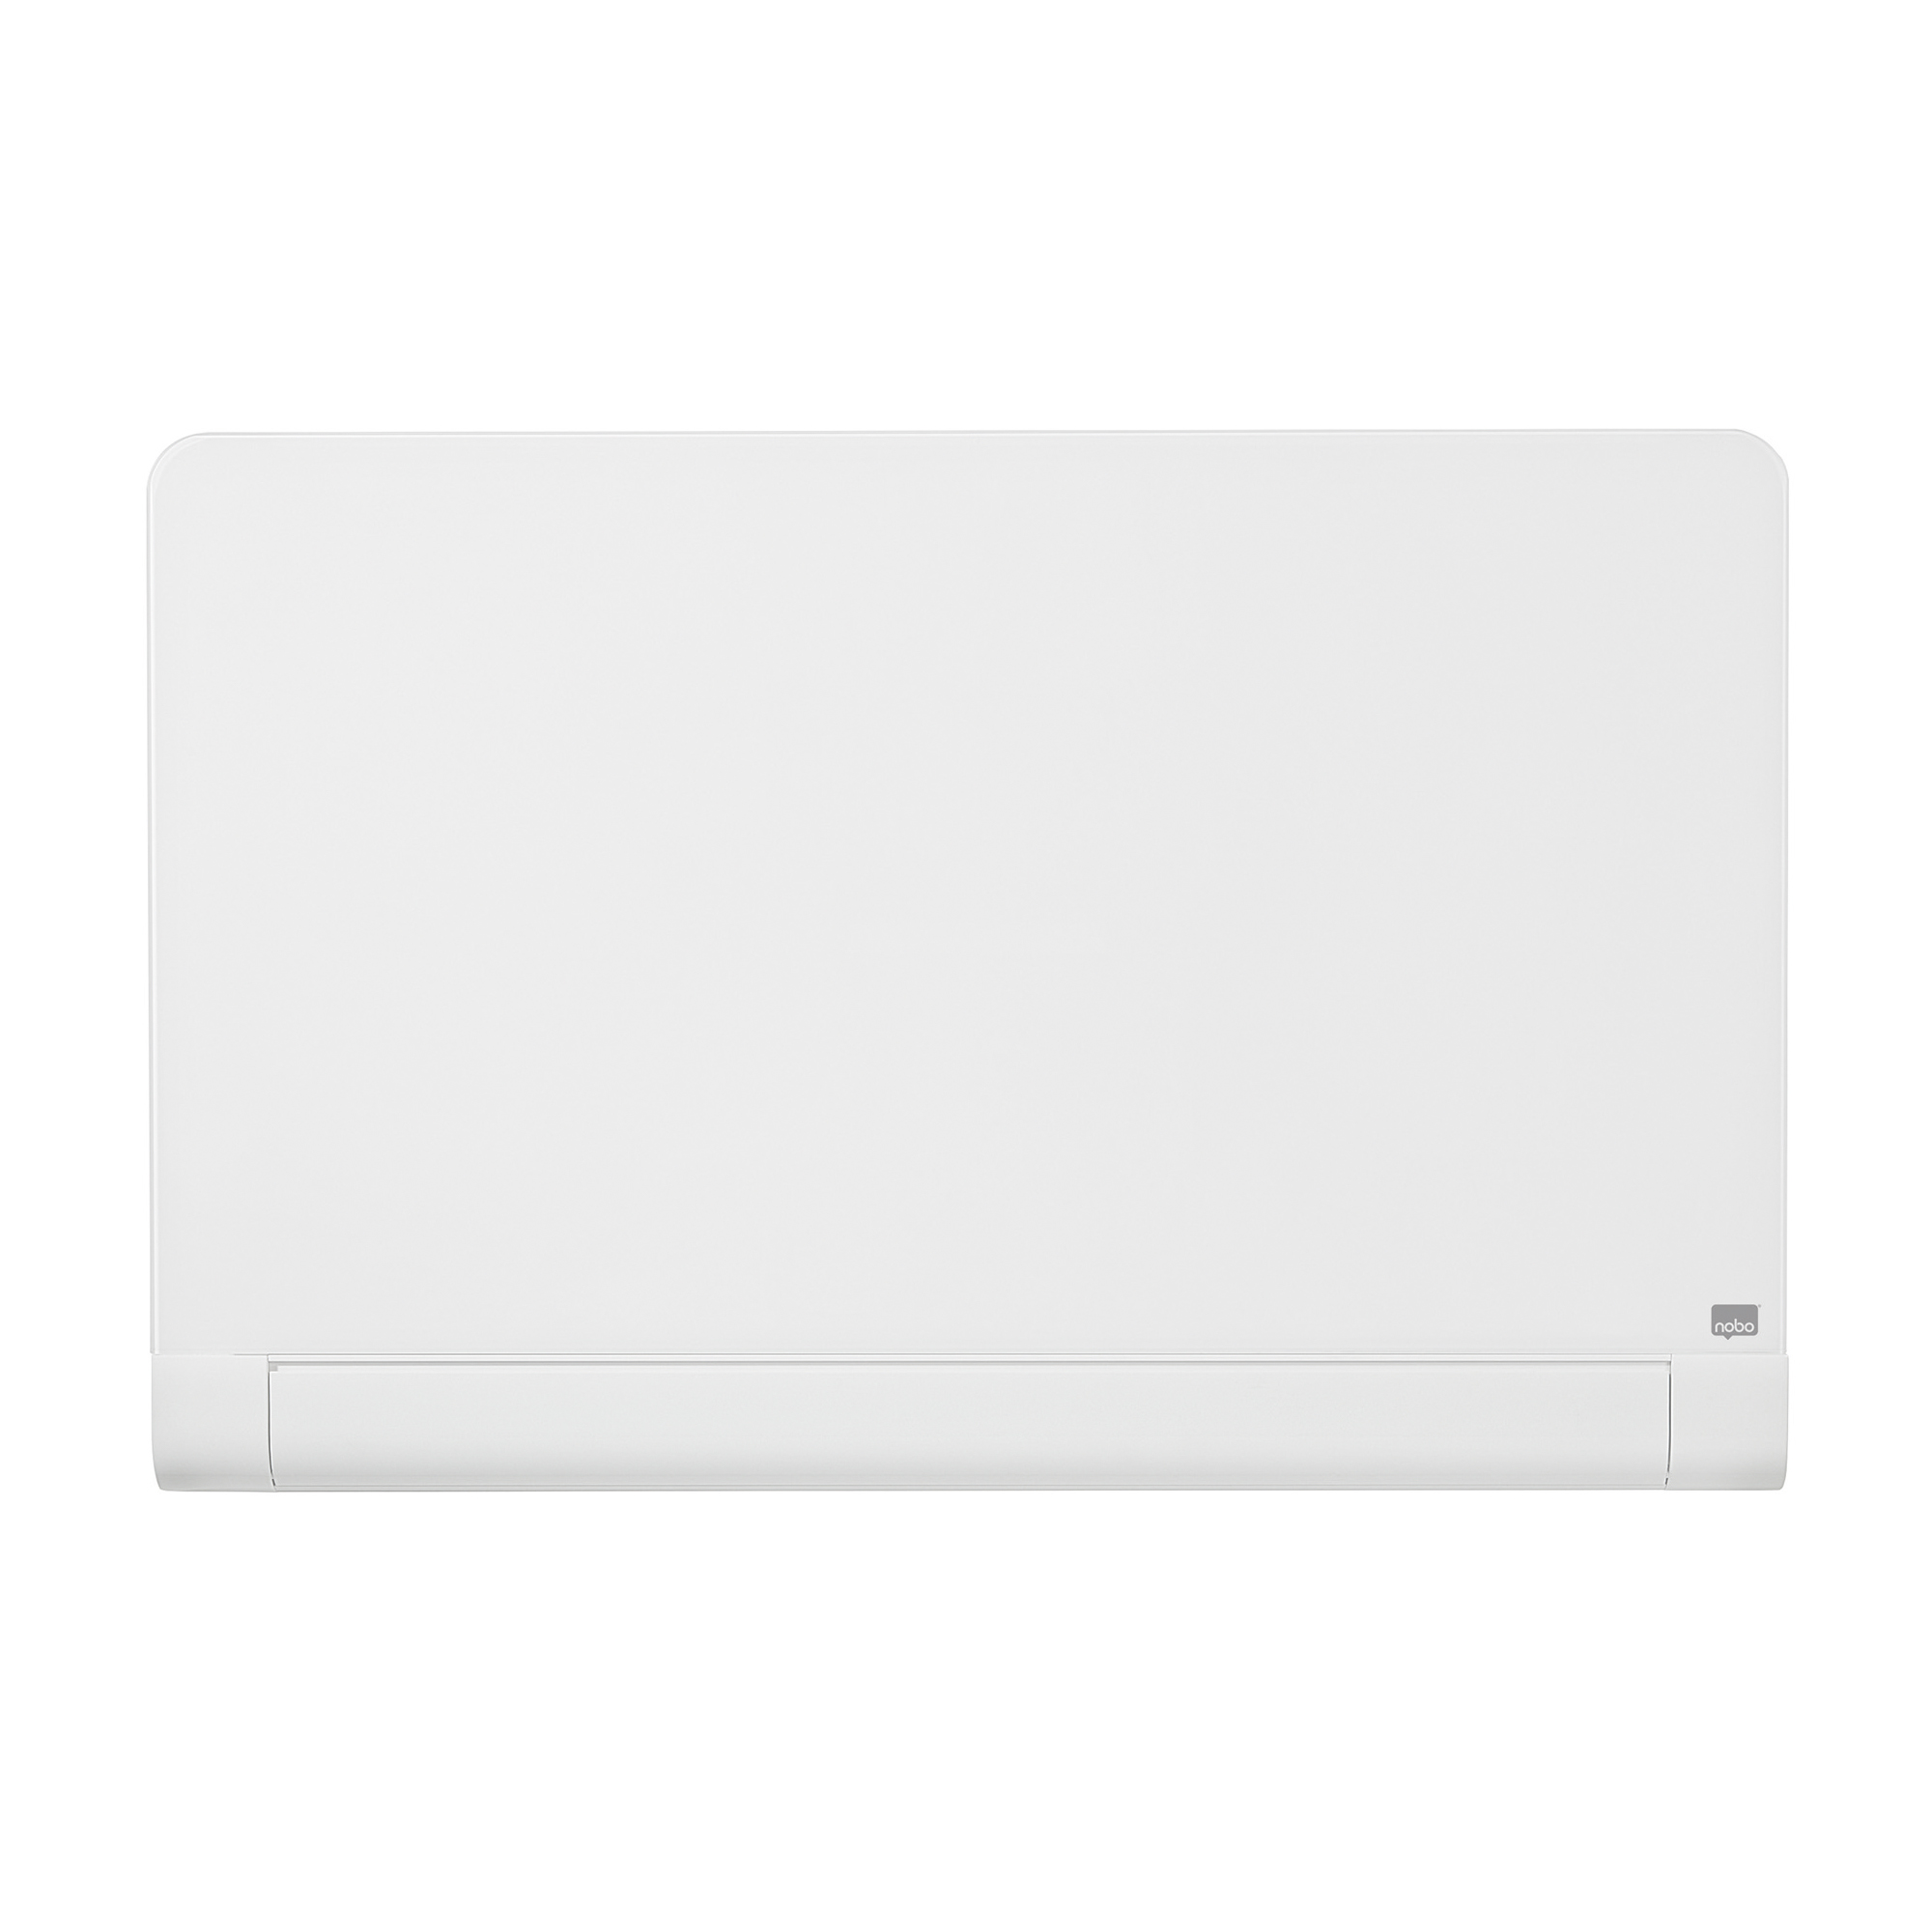 Magnetic Nobo Widescreen 57 inch WhiteBoard Glass Rnd Cnr Magnetic Fixing Inc W1260xH710mm Brill White Ref 1905192